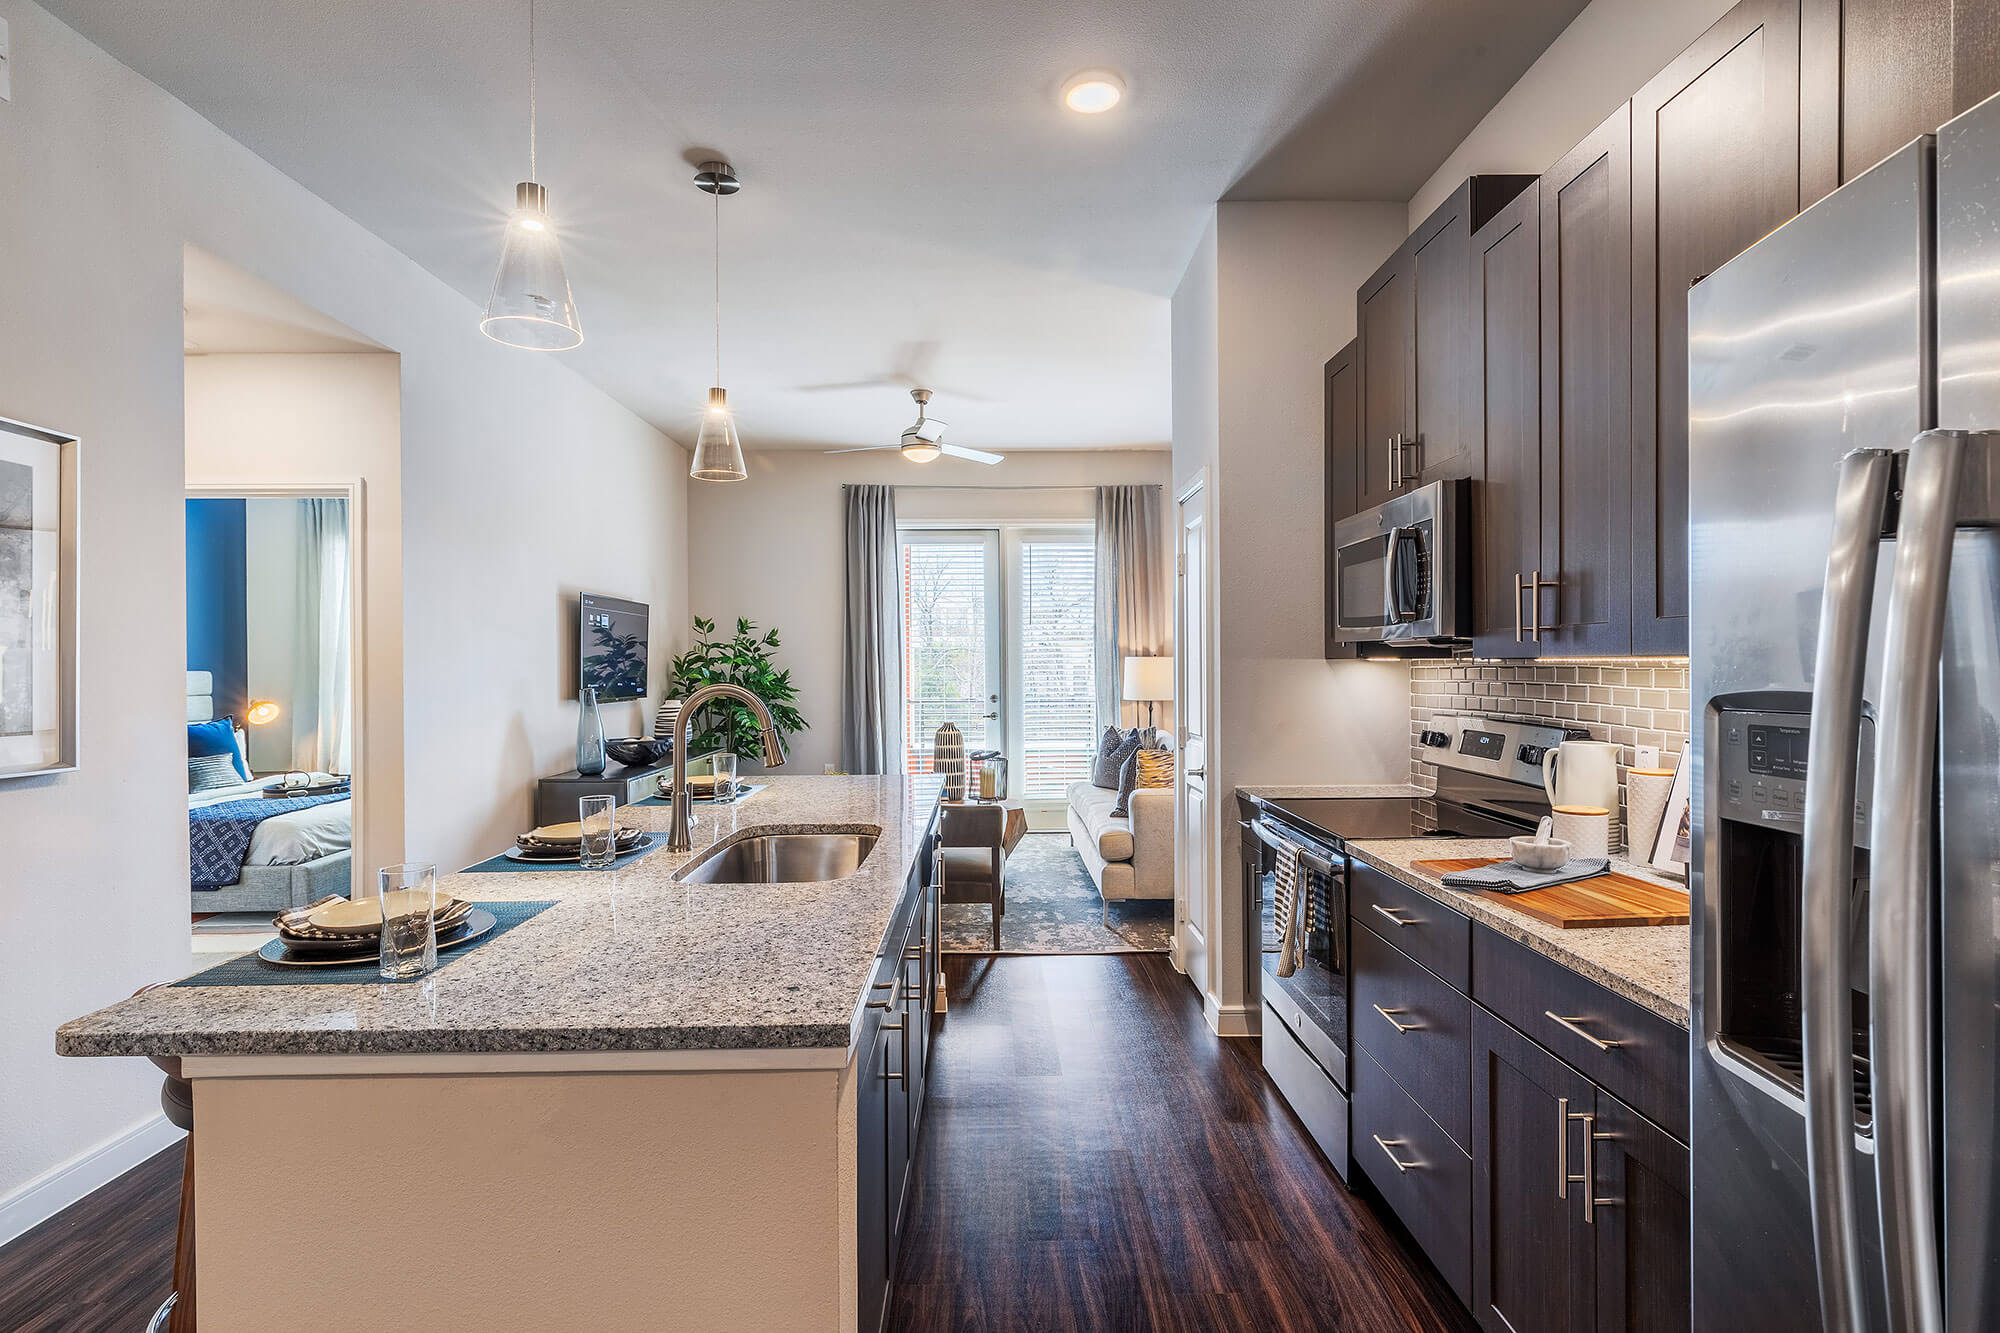 Open concept kitchen with large island with single basin sink, granite counters, stainless-steel appliances, pendant lights which opens to living area with door to patio and hallway to bedroom